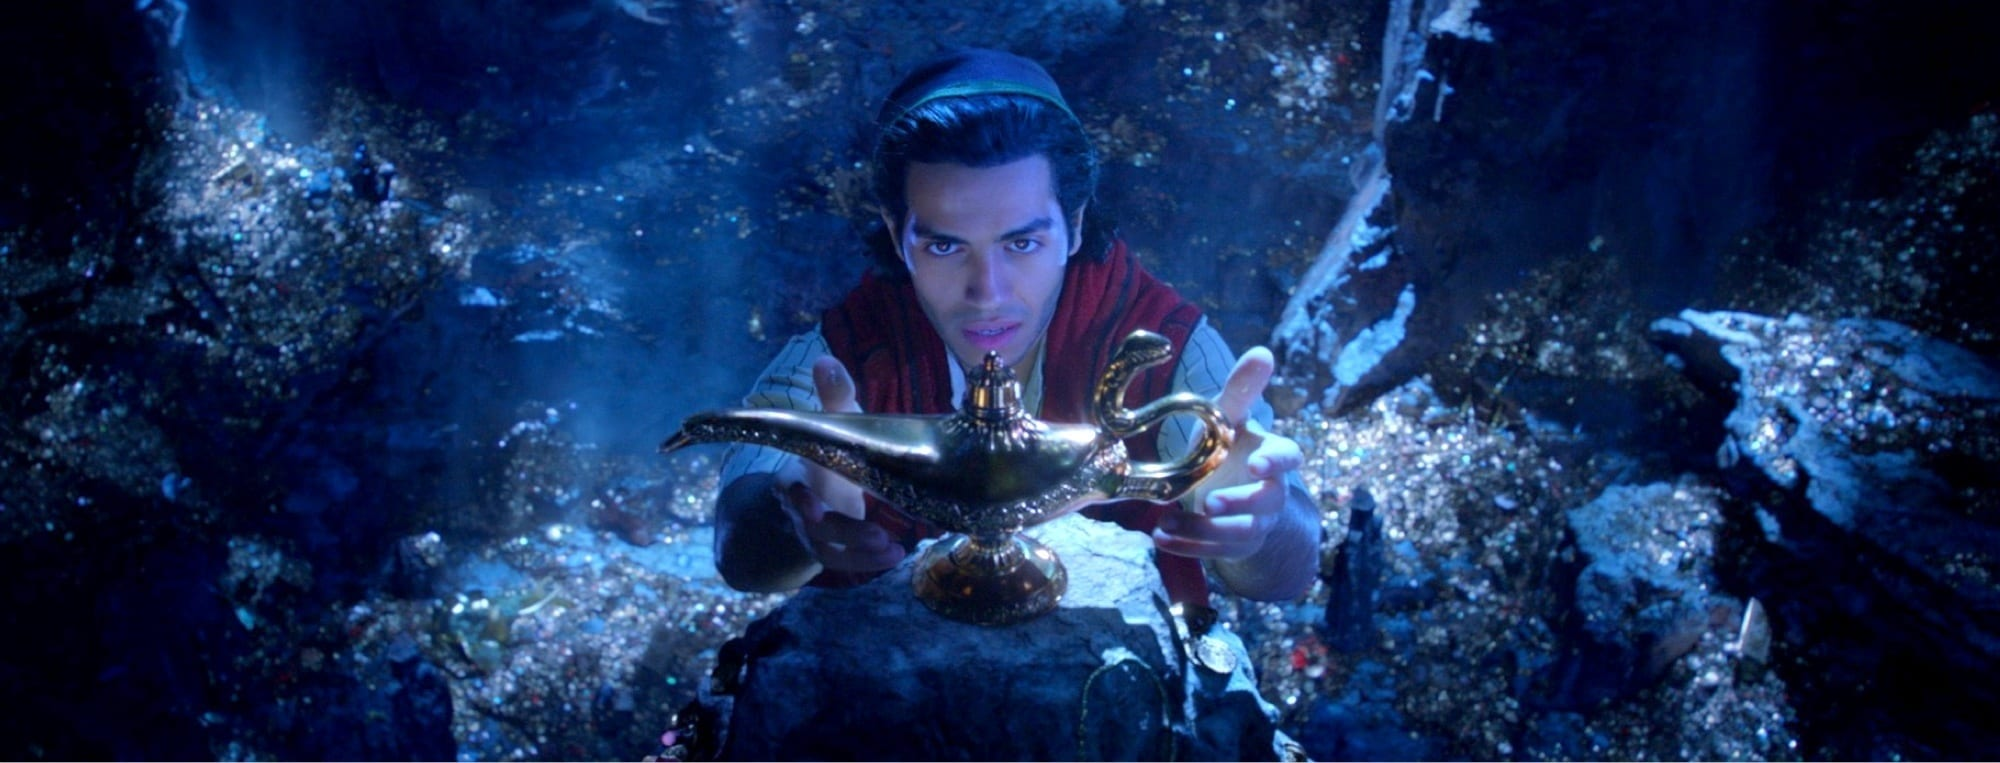 Aladdin - Everything We Know So Far